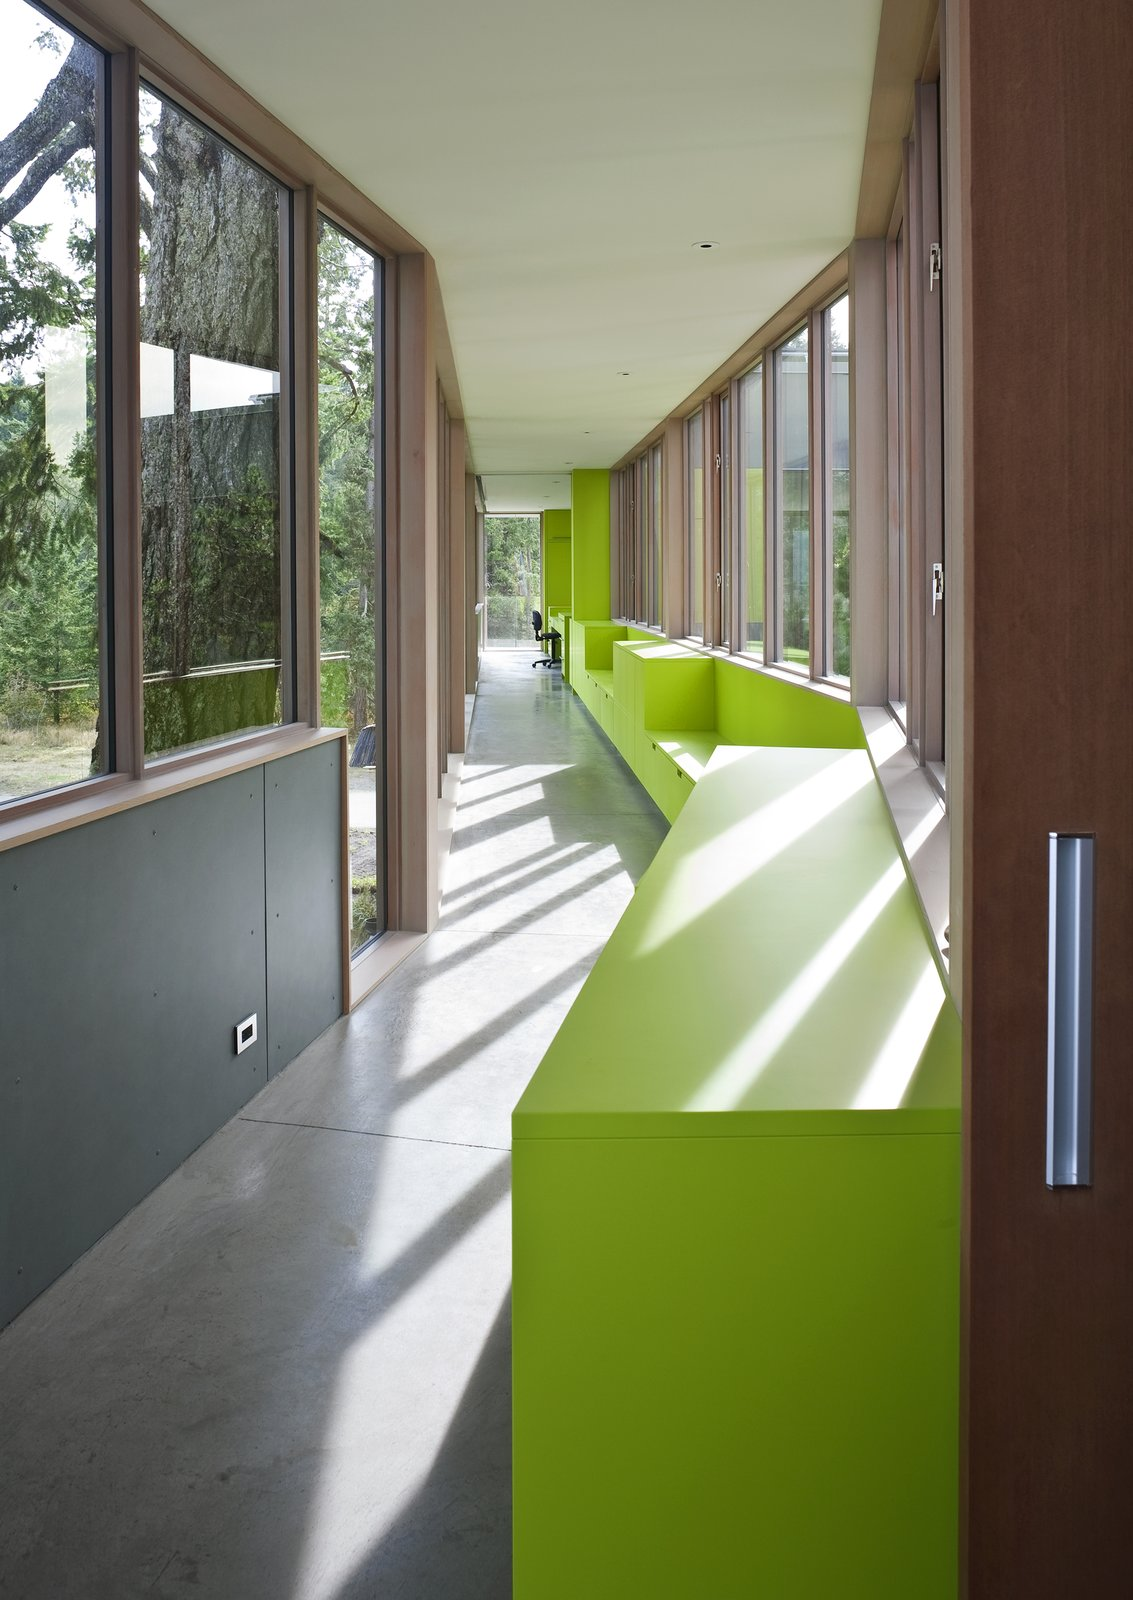 The semi-enclosed glass bridge walkway extends through the trees from the seasonally closable Guest house . The bright green color follows into the walkway, and covers the custom cabinetry and seating along the bridge.   #bridge #walkway #green #limegreen #glass #residential #hallway #beachhouse #beachhouses #bright #color #interstice #intersticearchitects #britishcolumbia #vancouverisland #bradlaughton #bradlaughtonphotography